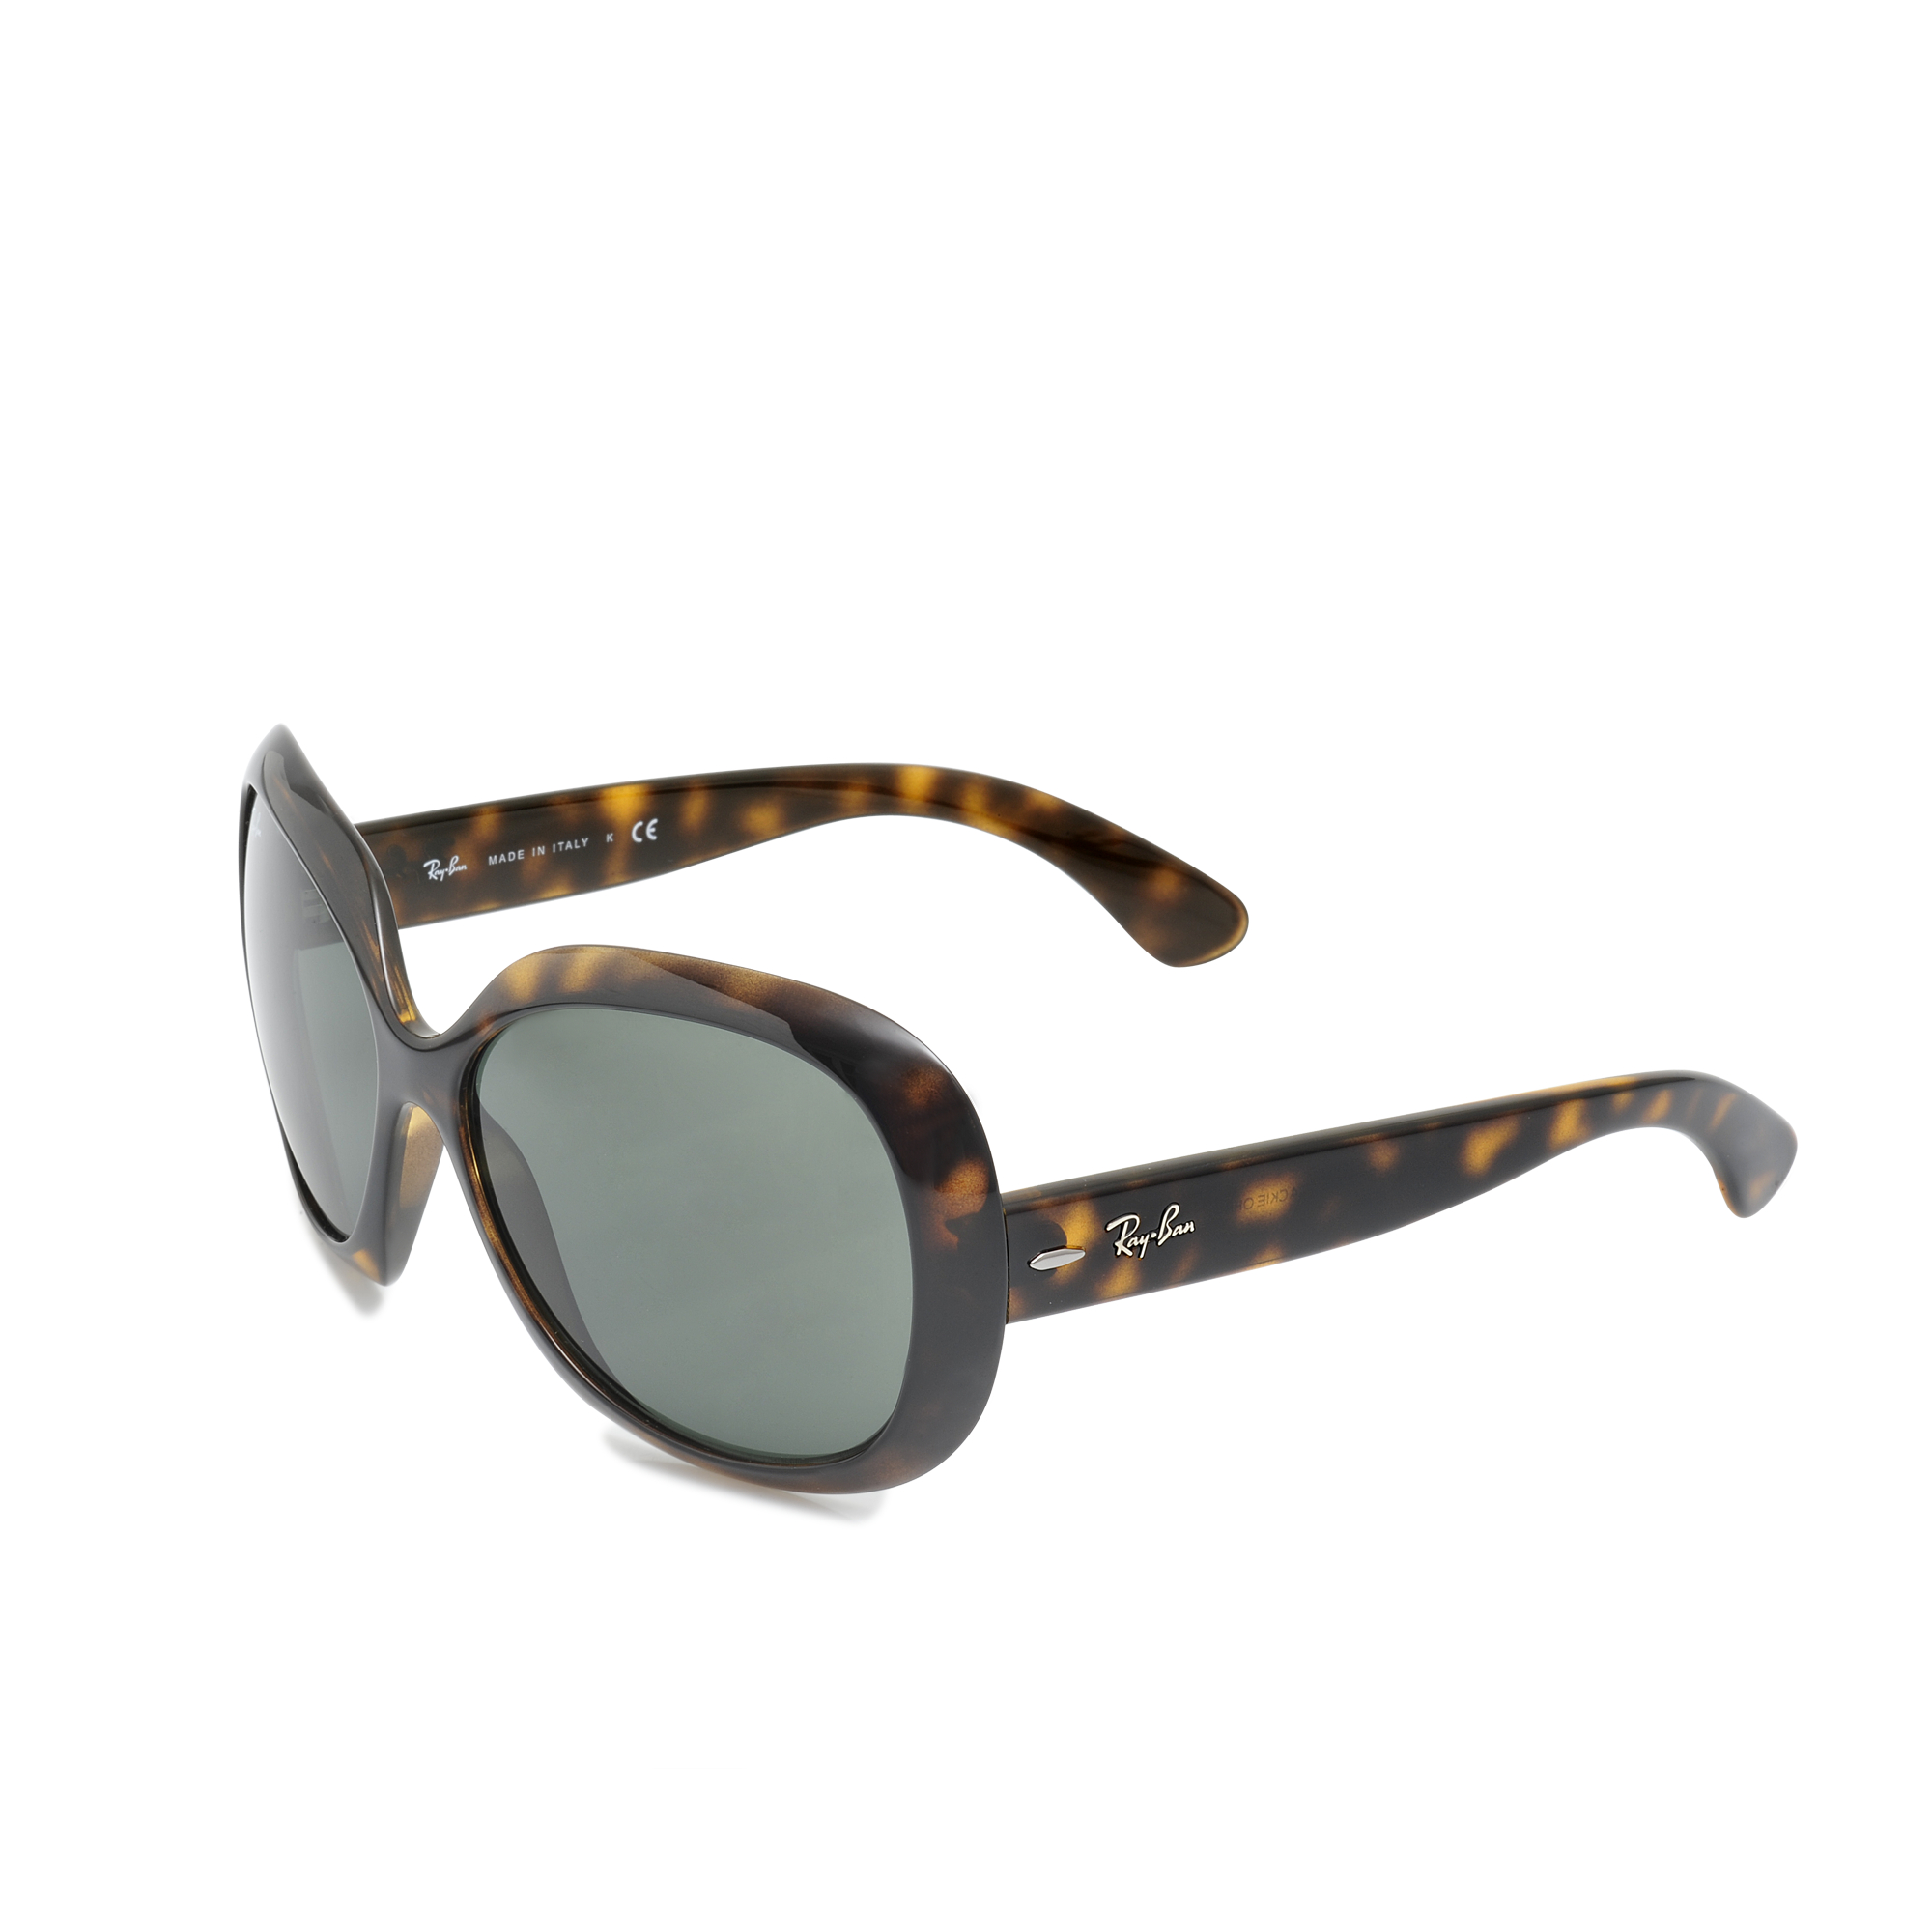 ray ban jackie ohh ii sunglasses 4098 in brown lyst. Black Bedroom Furniture Sets. Home Design Ideas